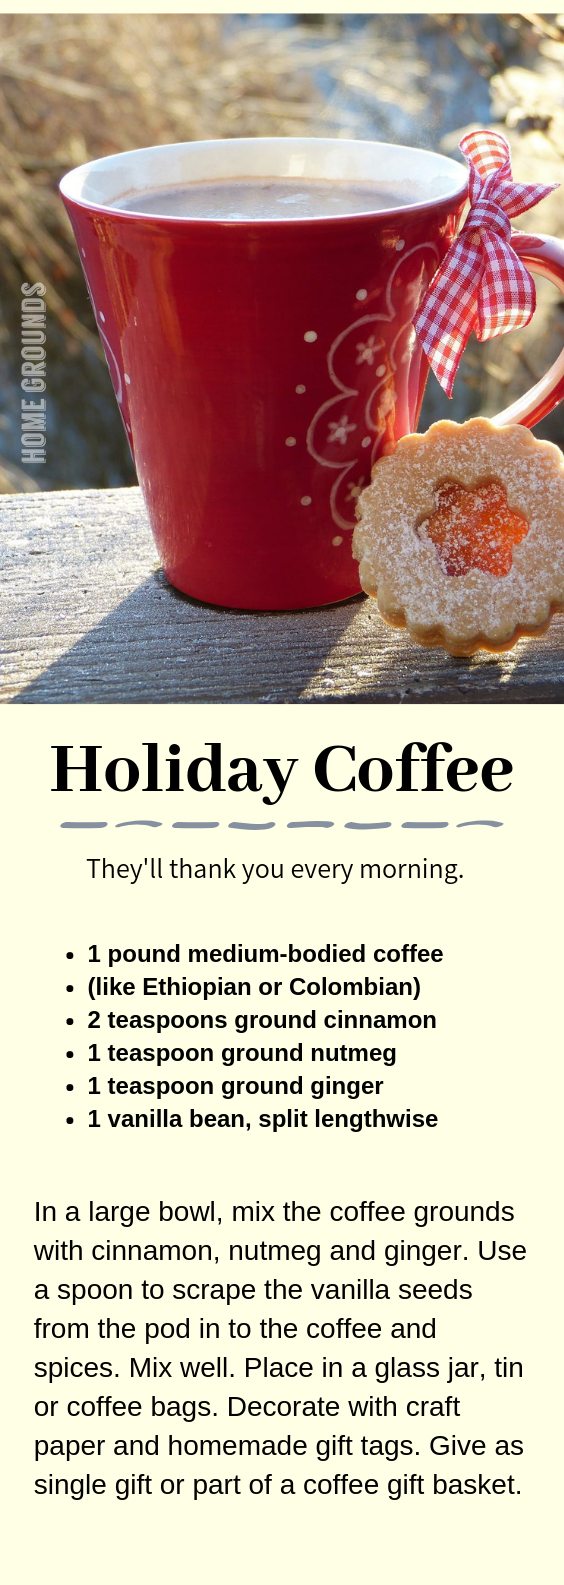 44 of the Best Gifts for Coffee Lovers (2020 Update)